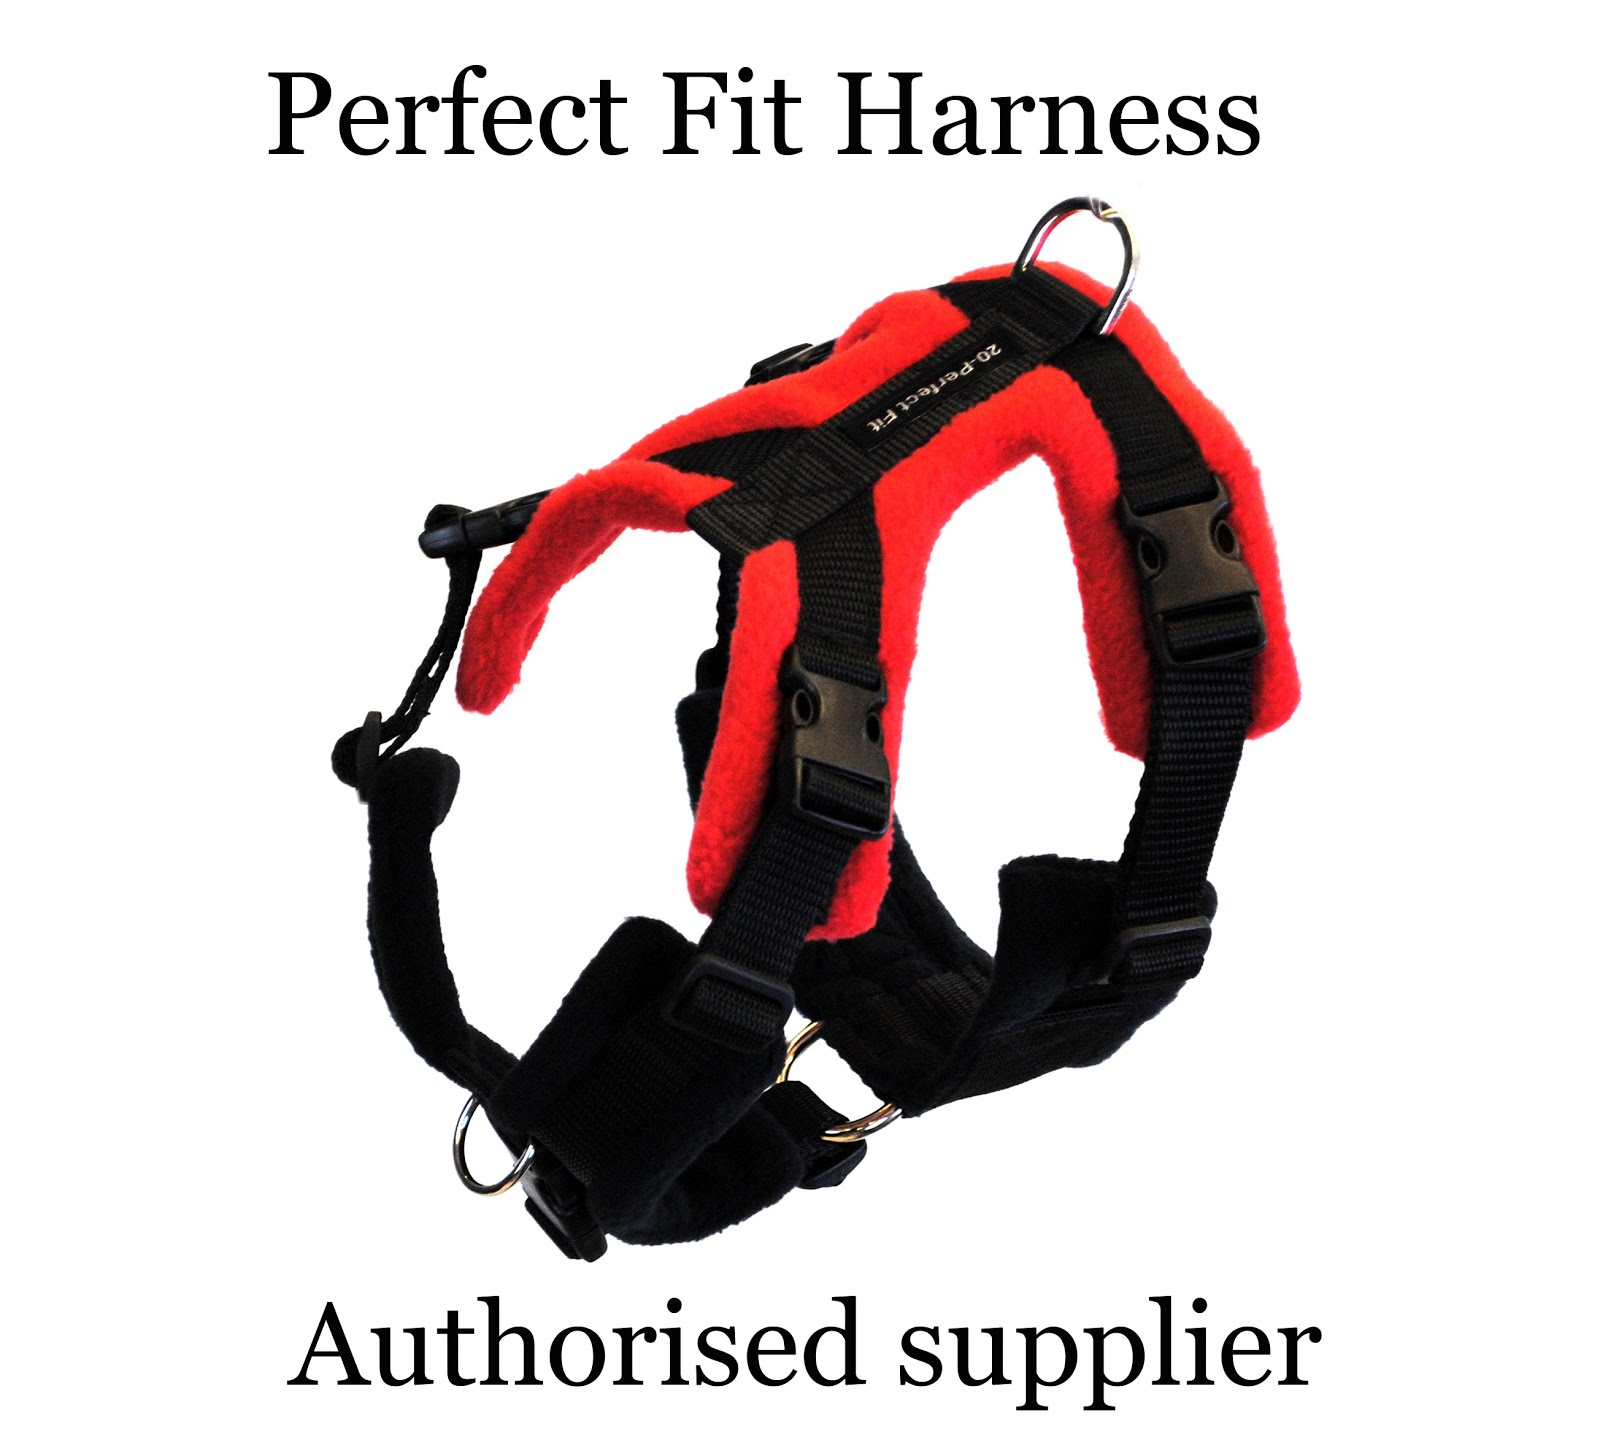 Perfect Fit Harness